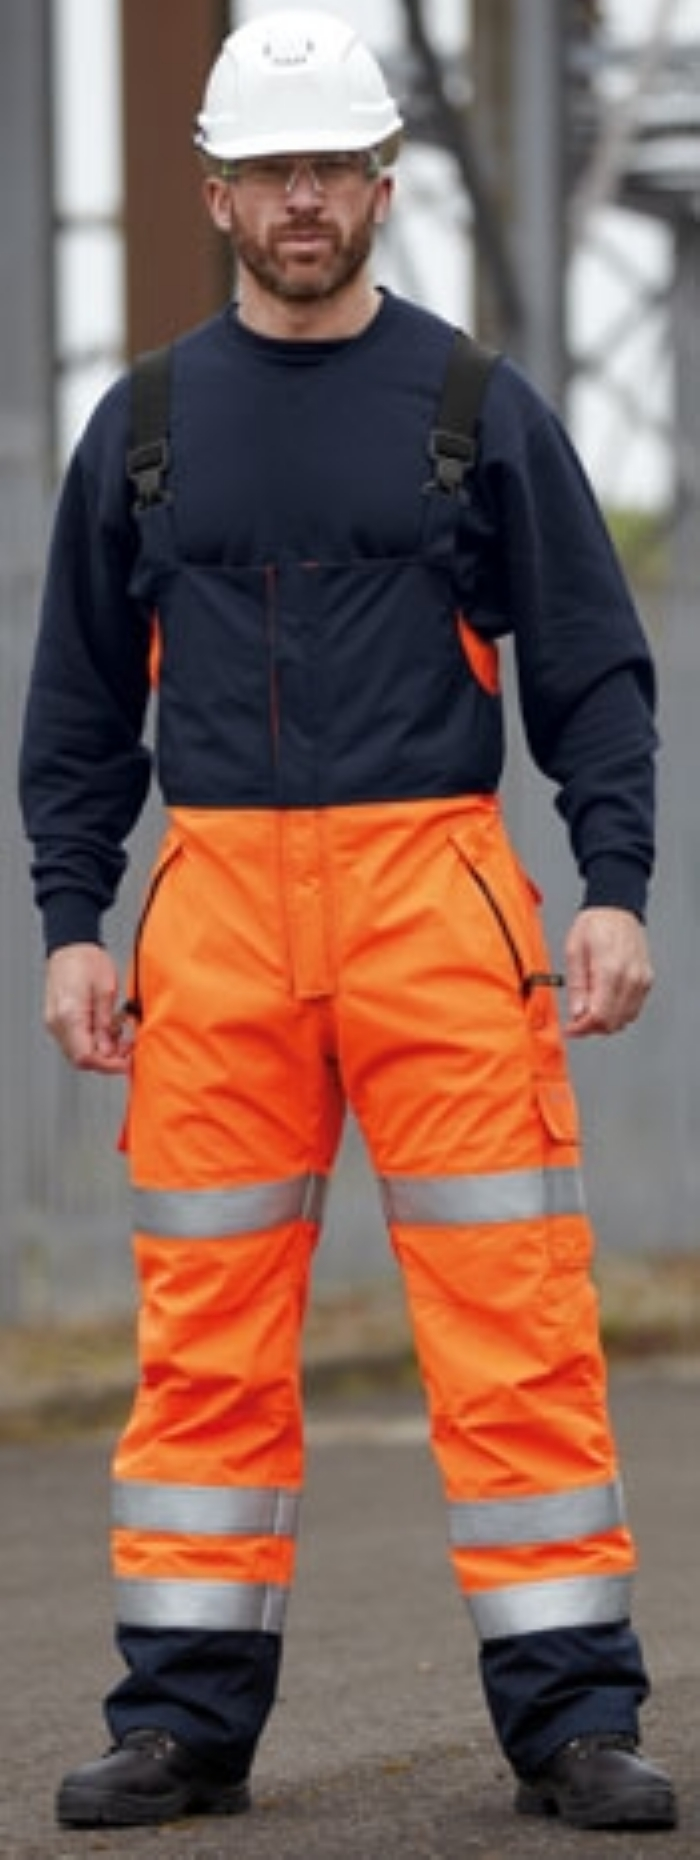 Roots Full Option Waterproof Trousers - Orange/Navy